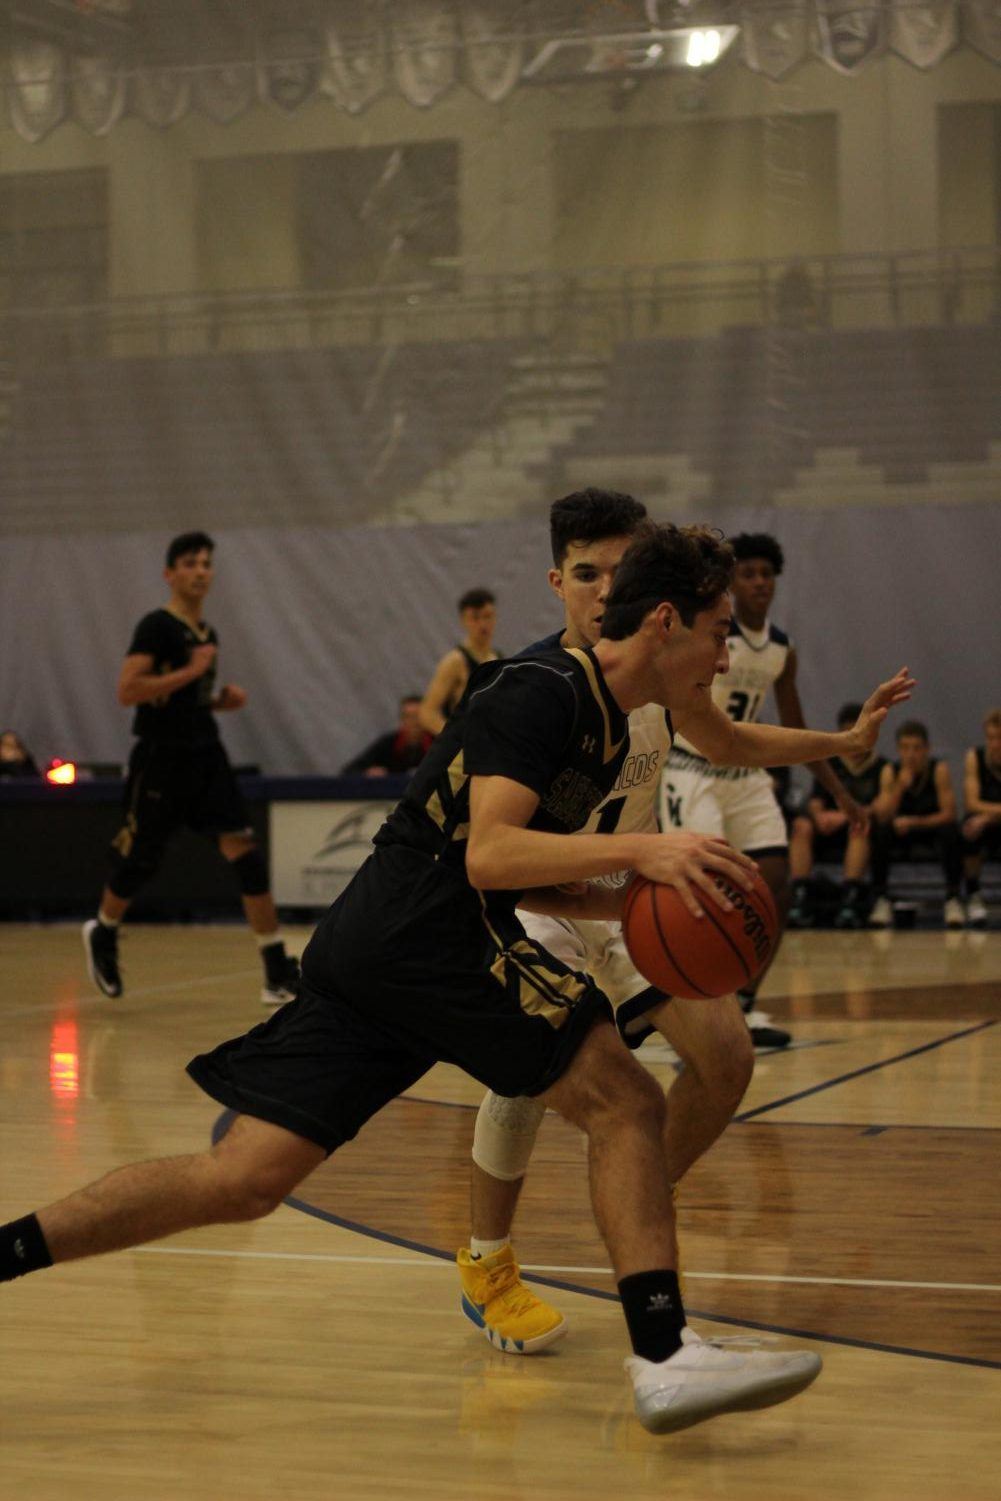 Senior+Matthew+Korf+dribbles+the+ball+down+the+court+where+the+San+Marcos+defense+is+waiting.+Korf+passed+the+ball+to+his+teammates+to+give+them+a+chance+to+score.+